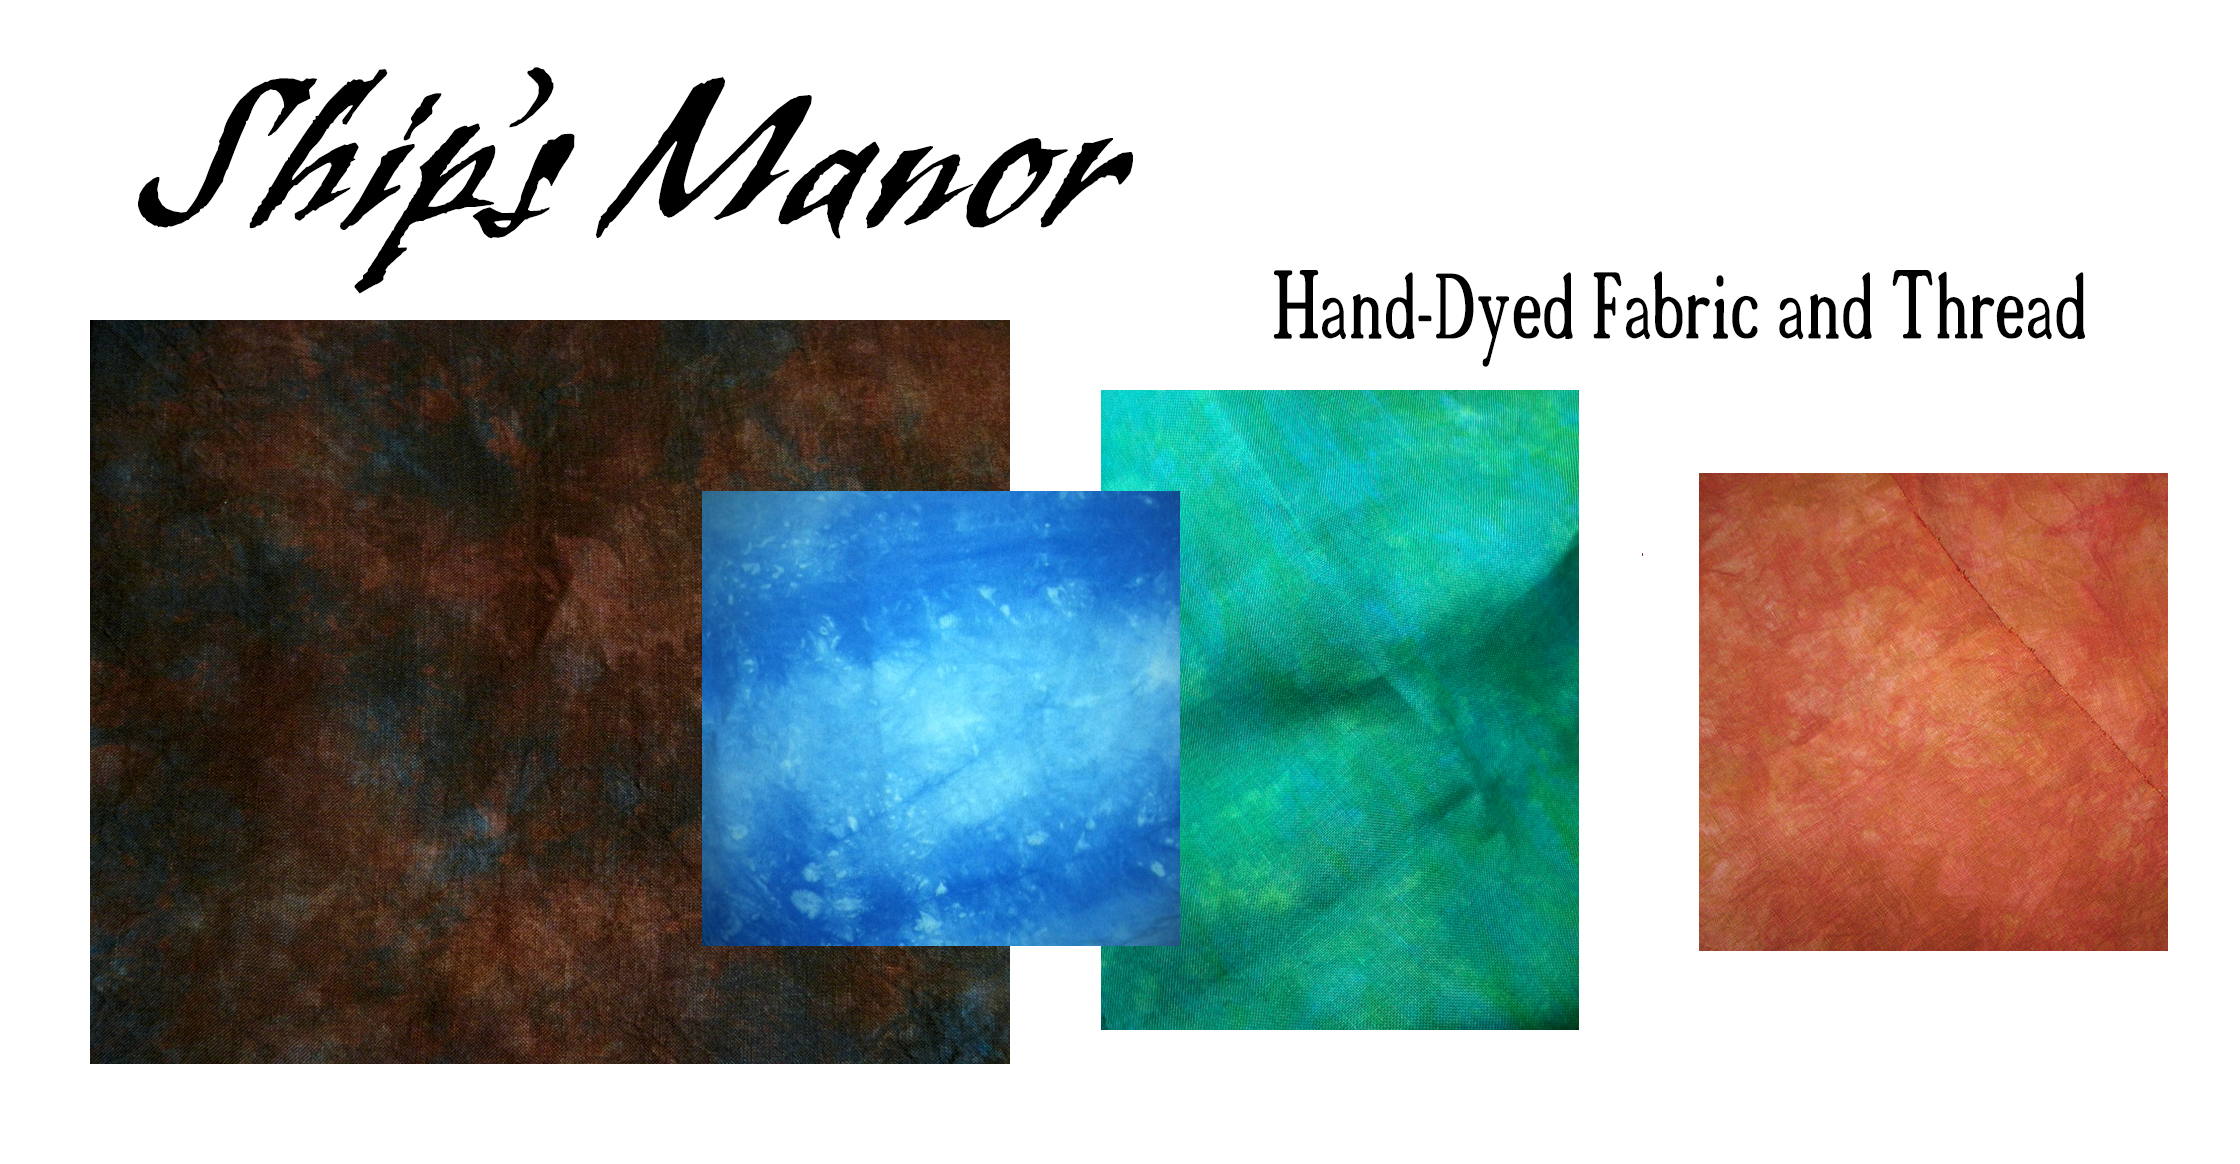 Do you want to see more hand-dyed fabric?